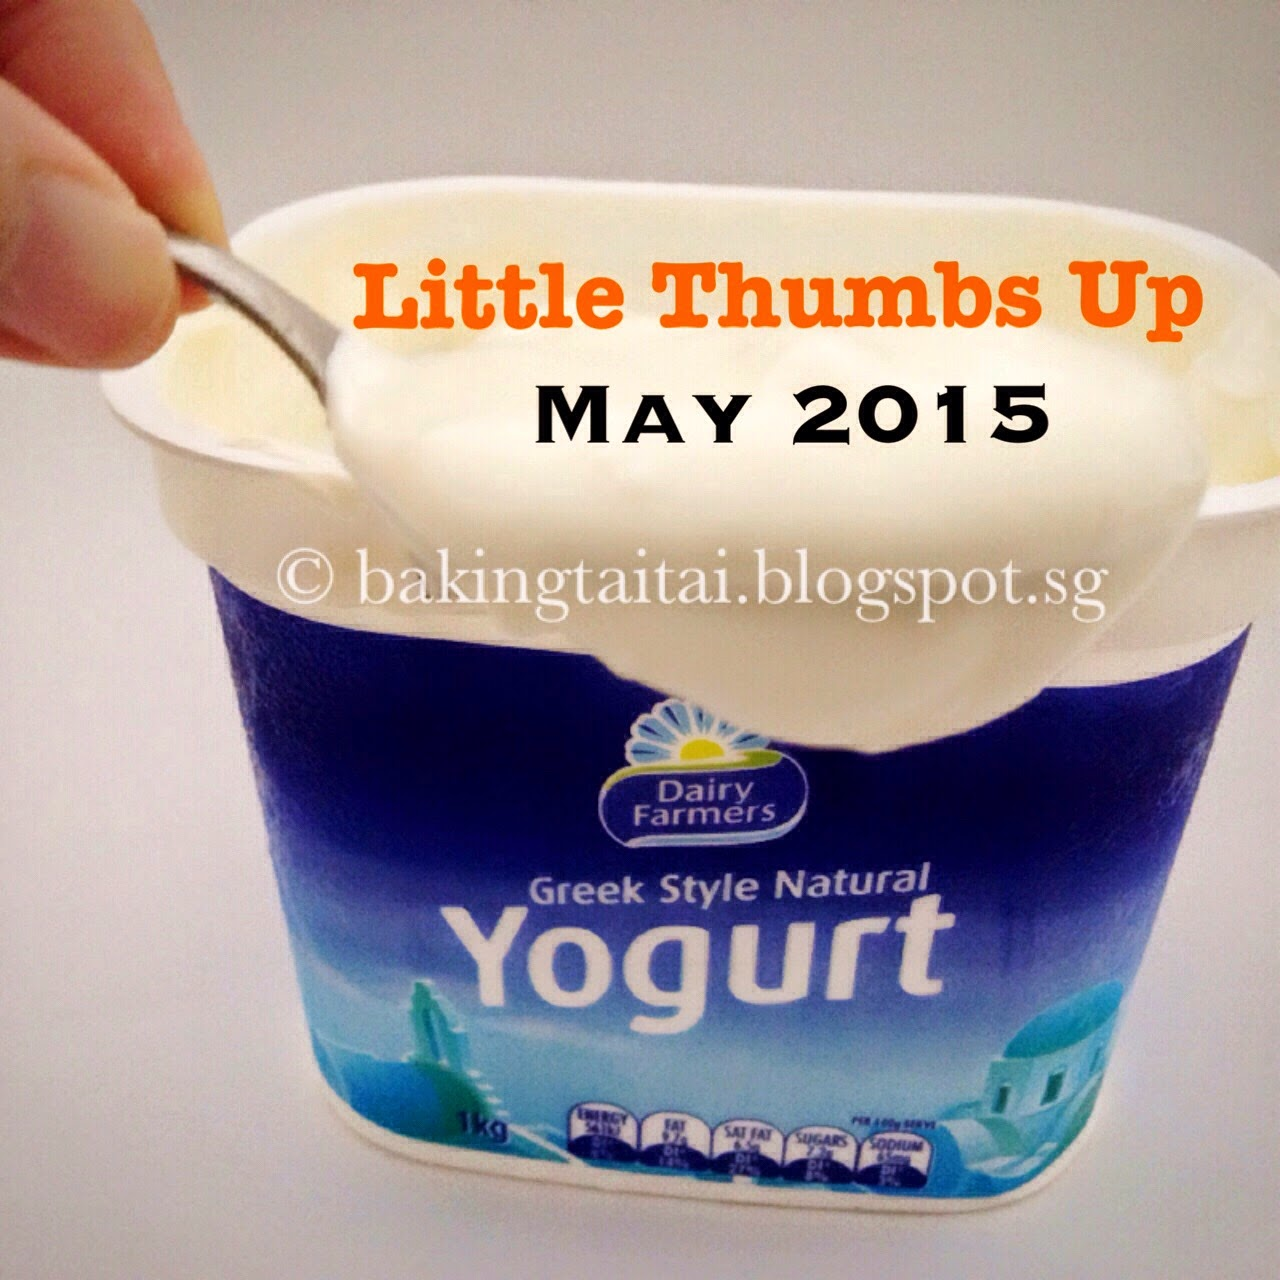 Little Thumbs Up Cooking/Baking Event with Yogurt Theme